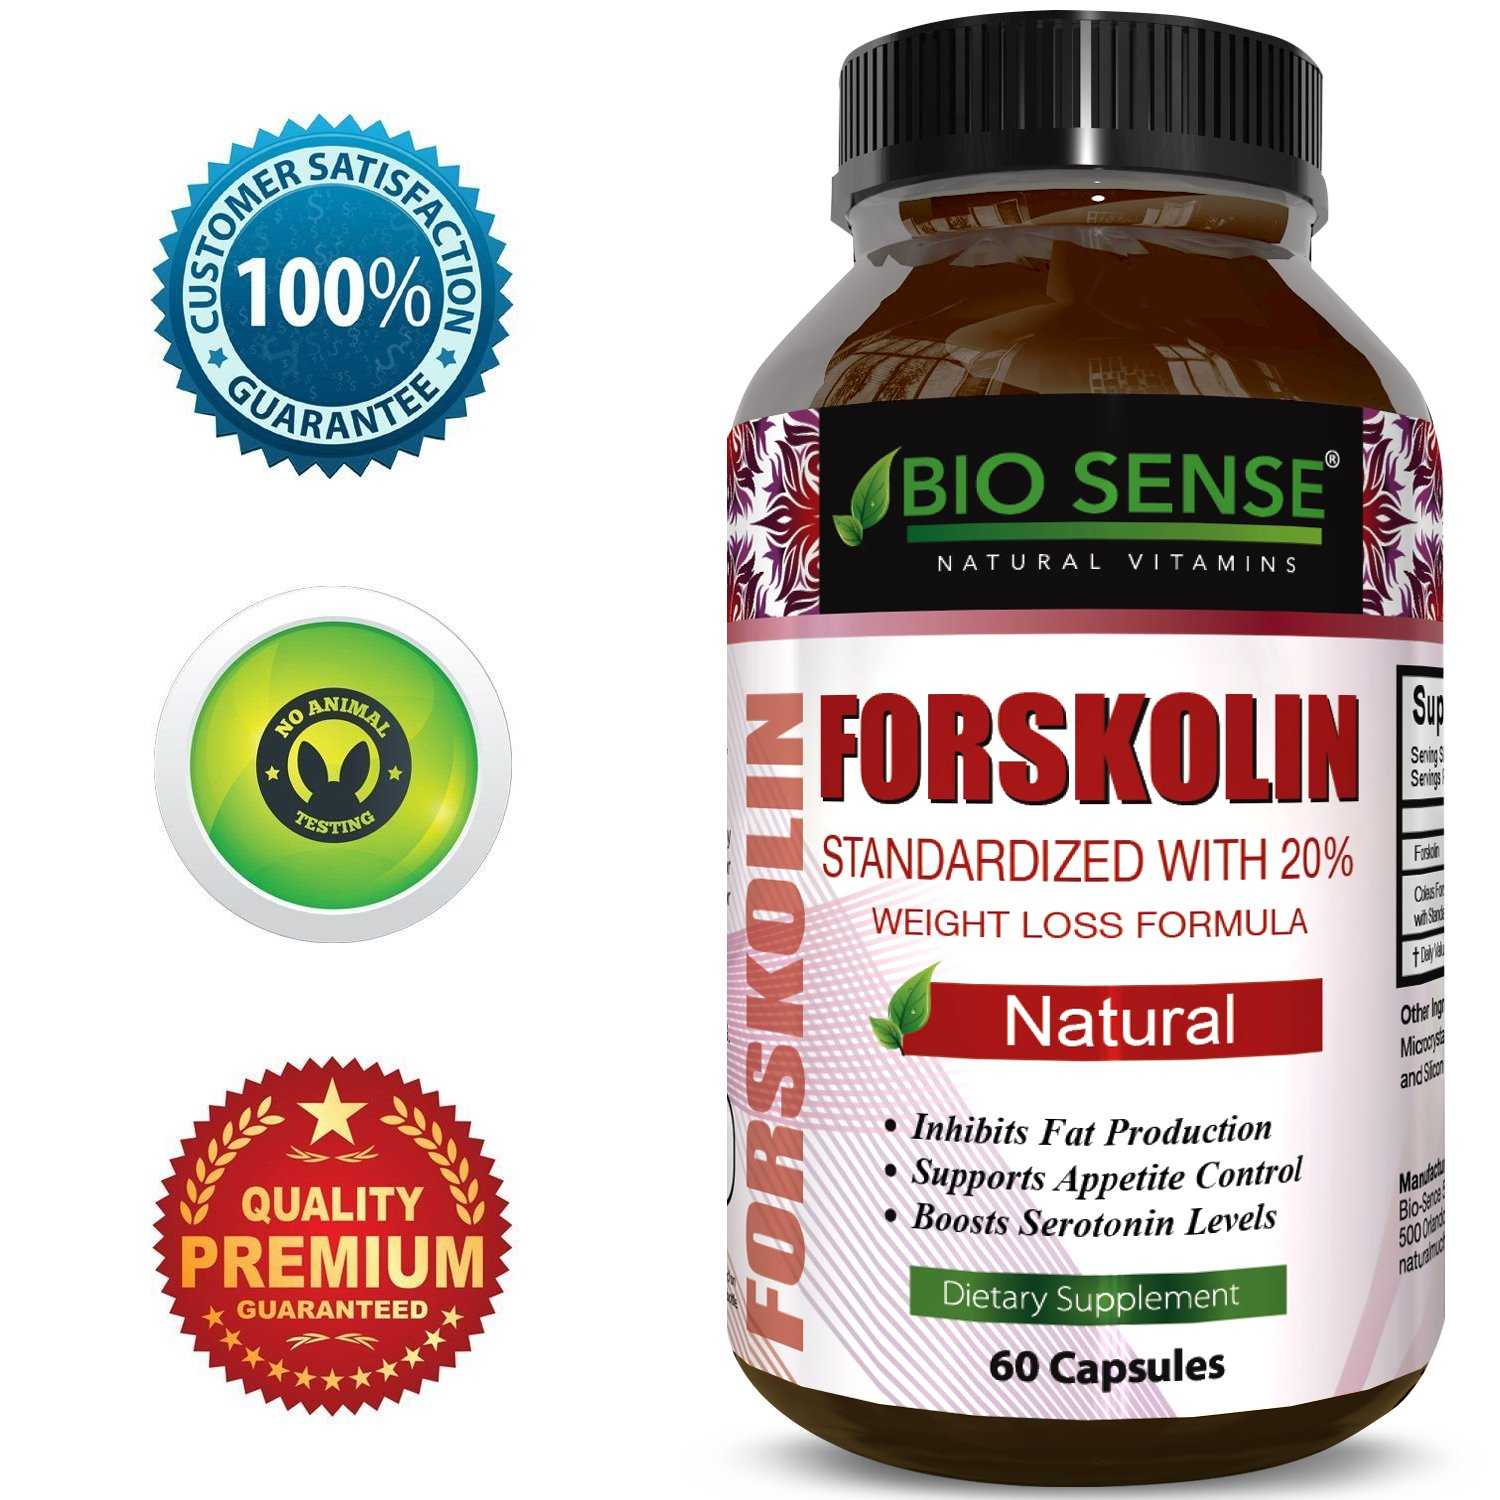 Forskolin Pure Supplements For Men Women Weight Loss Pills Natural Appetite Control Potent